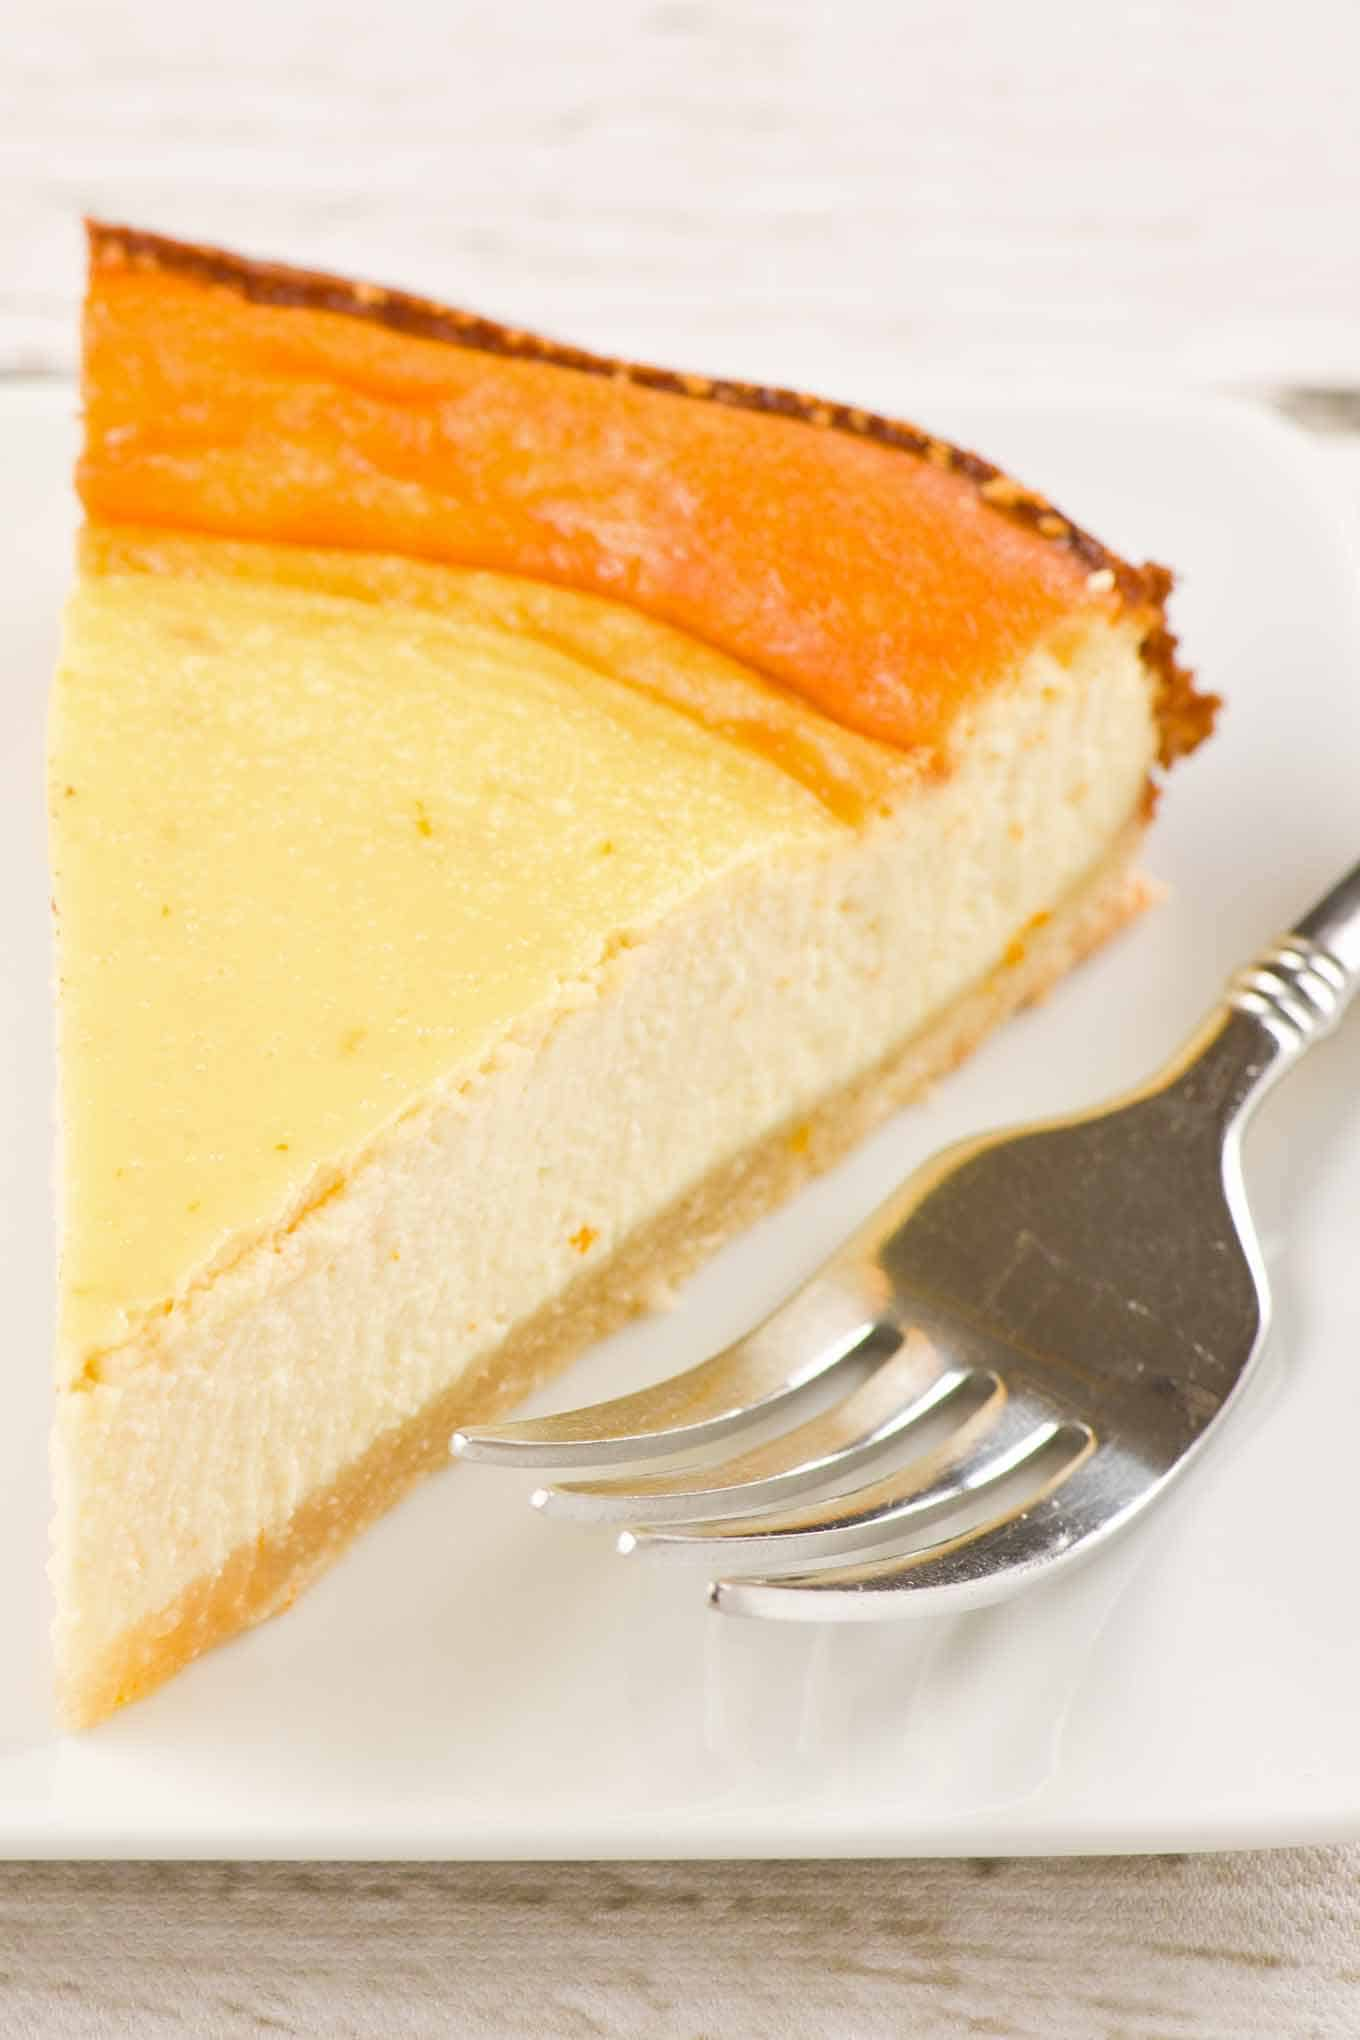 Single slice of ricotta pie on a dessert plate with fork.